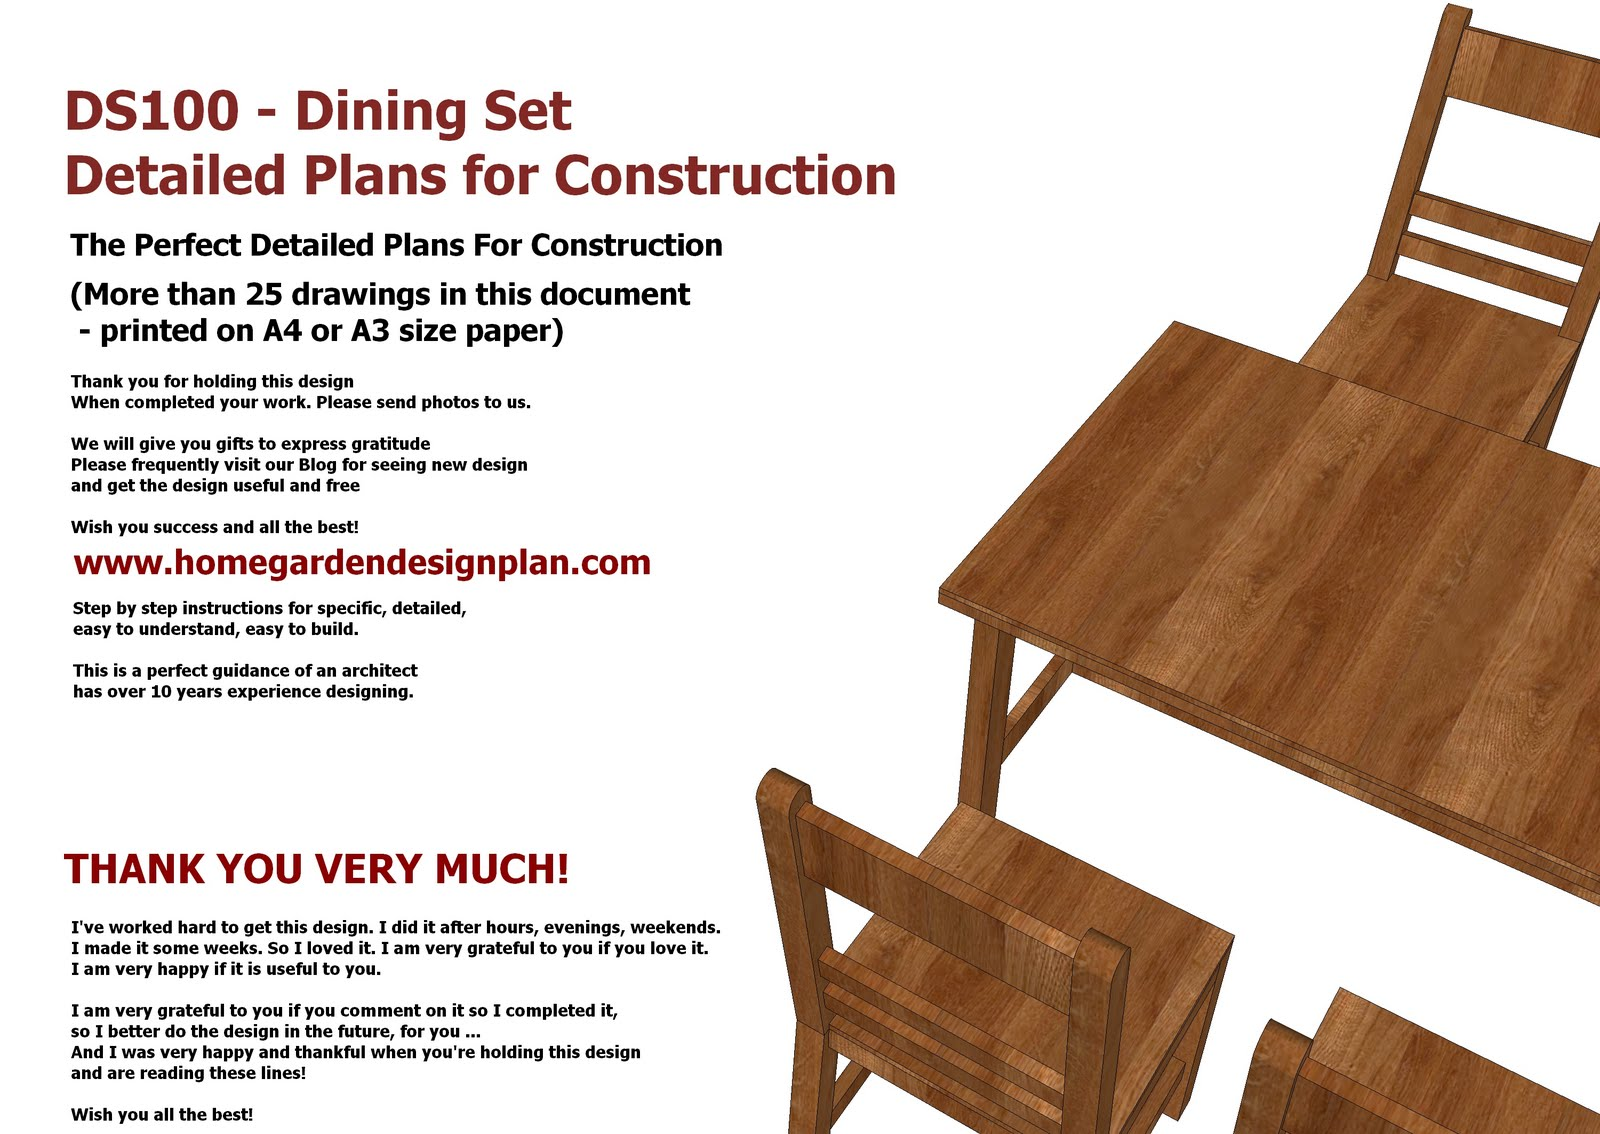 DS100   Dining Table Set Plans   Woodworking Plans   Outdoor Furniture Plans Part 97